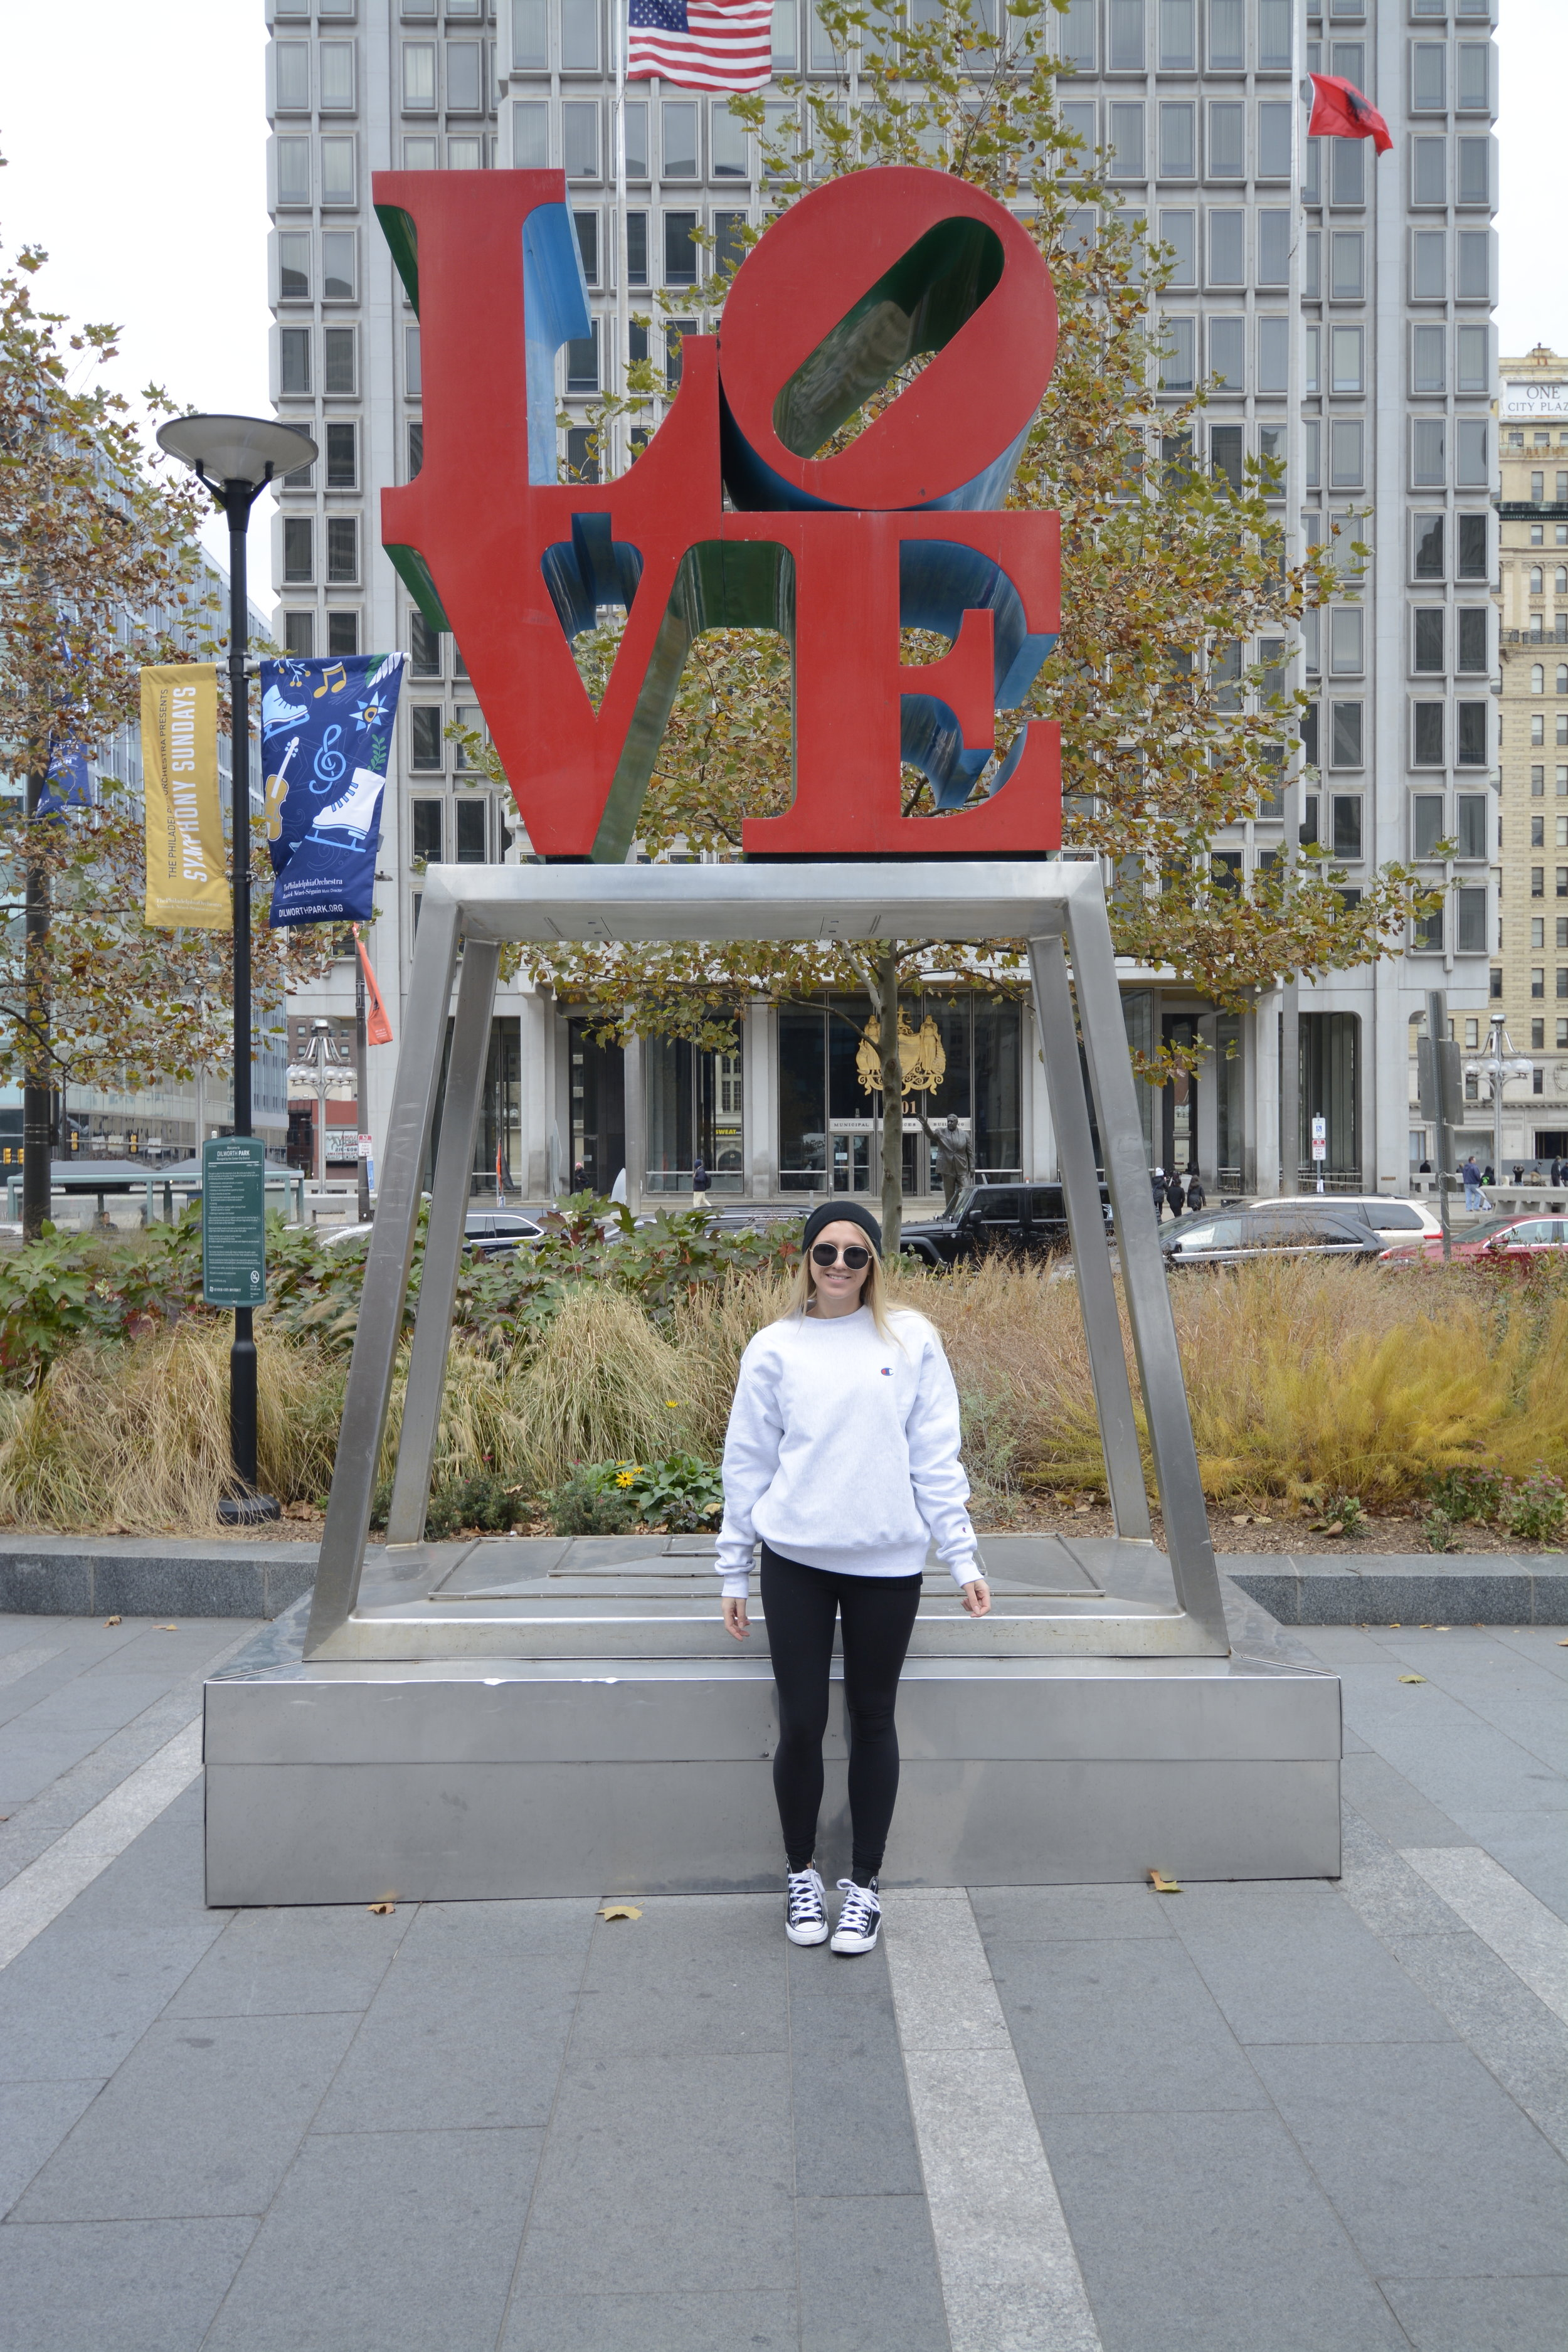 philly_4